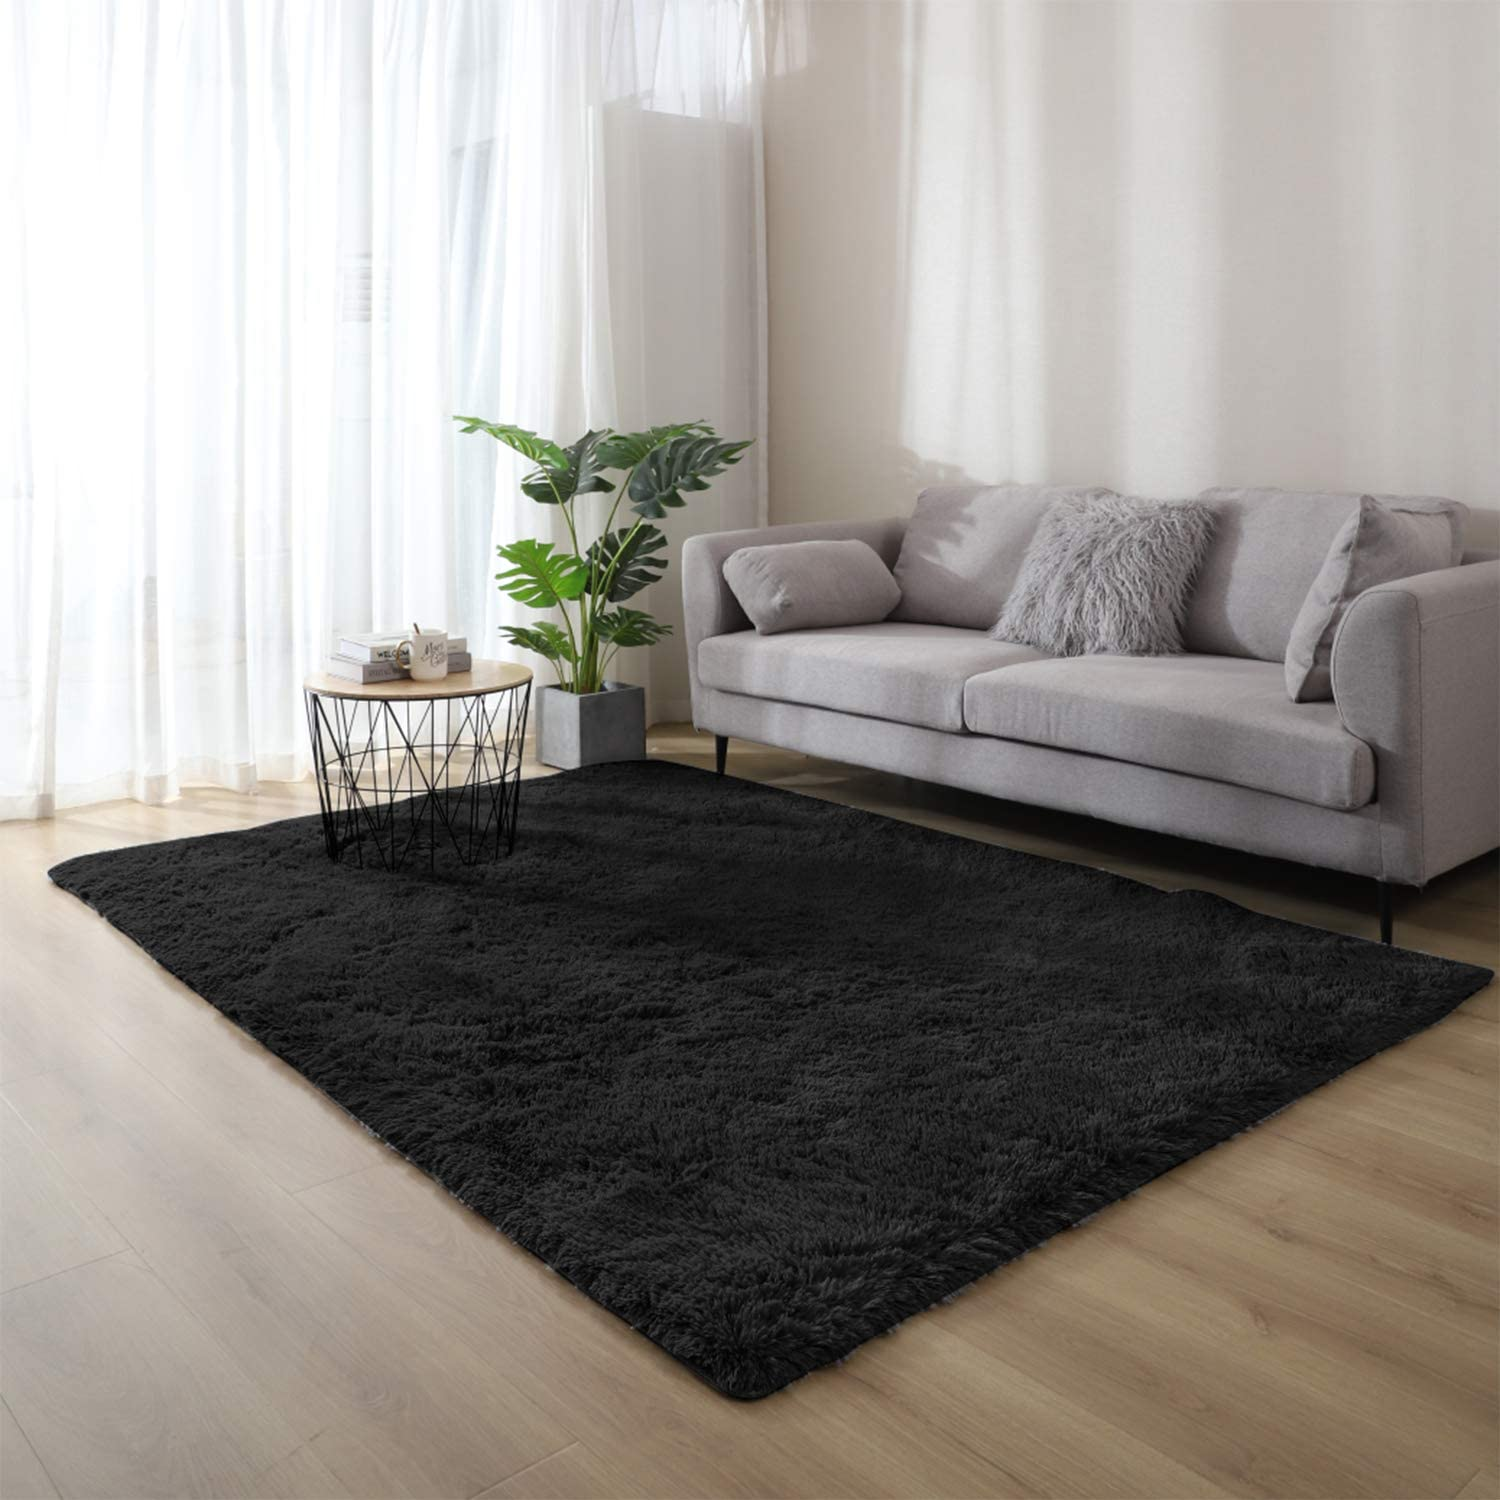 WochiTV Ultra Soft Fluffy Shaggy Black Area Rug 2x3 Feet ,Non-Slip Plush Machine Washable Rug Living Room Bedroom Floor Carpet Kids Baby Nursery Decor Modern Rug